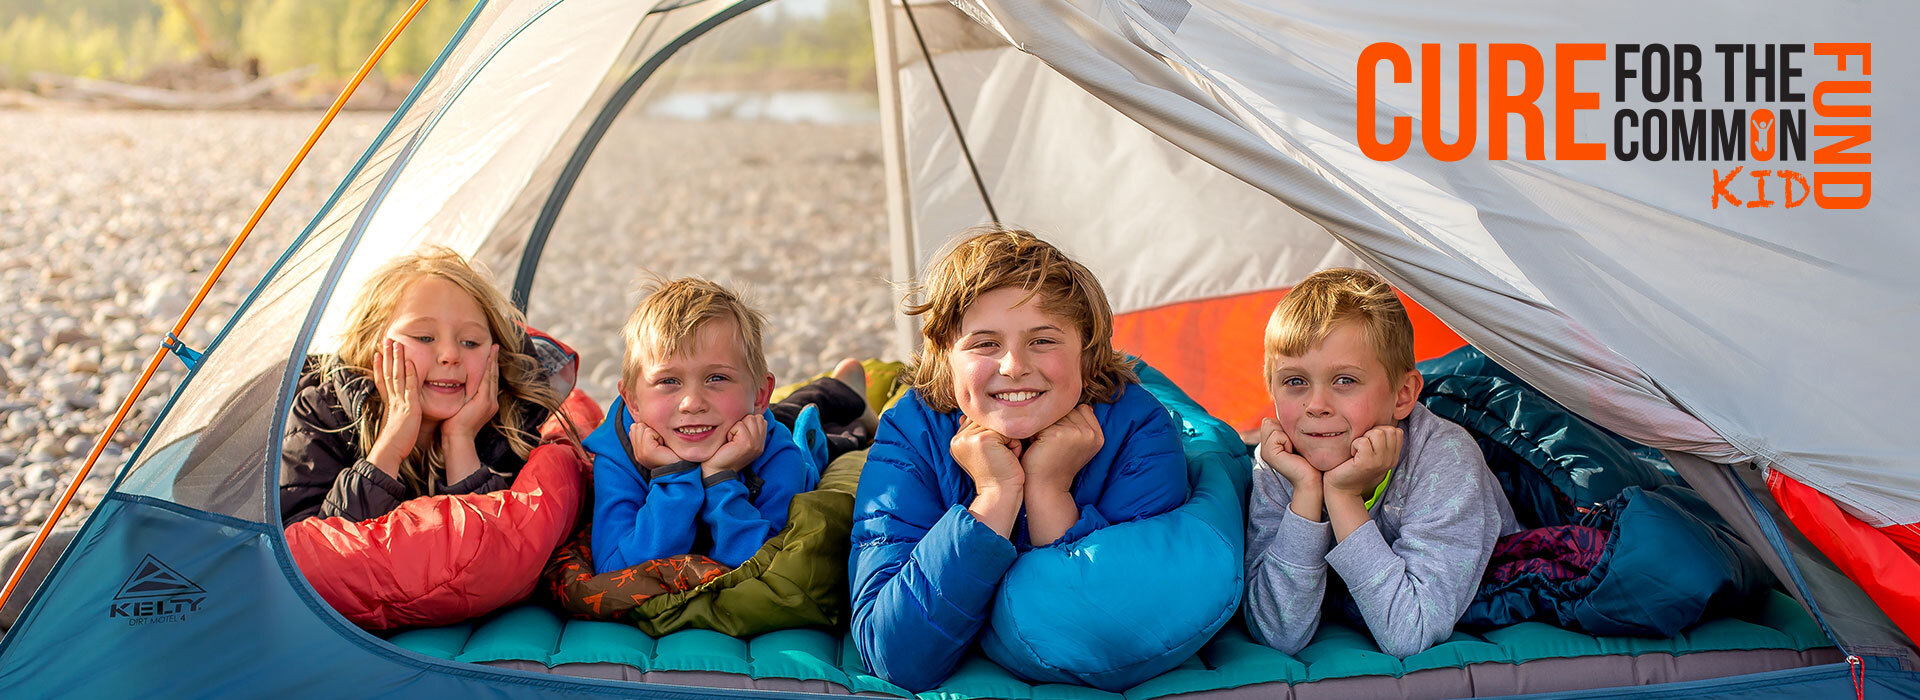 Kids in a kelty tent facing the camera